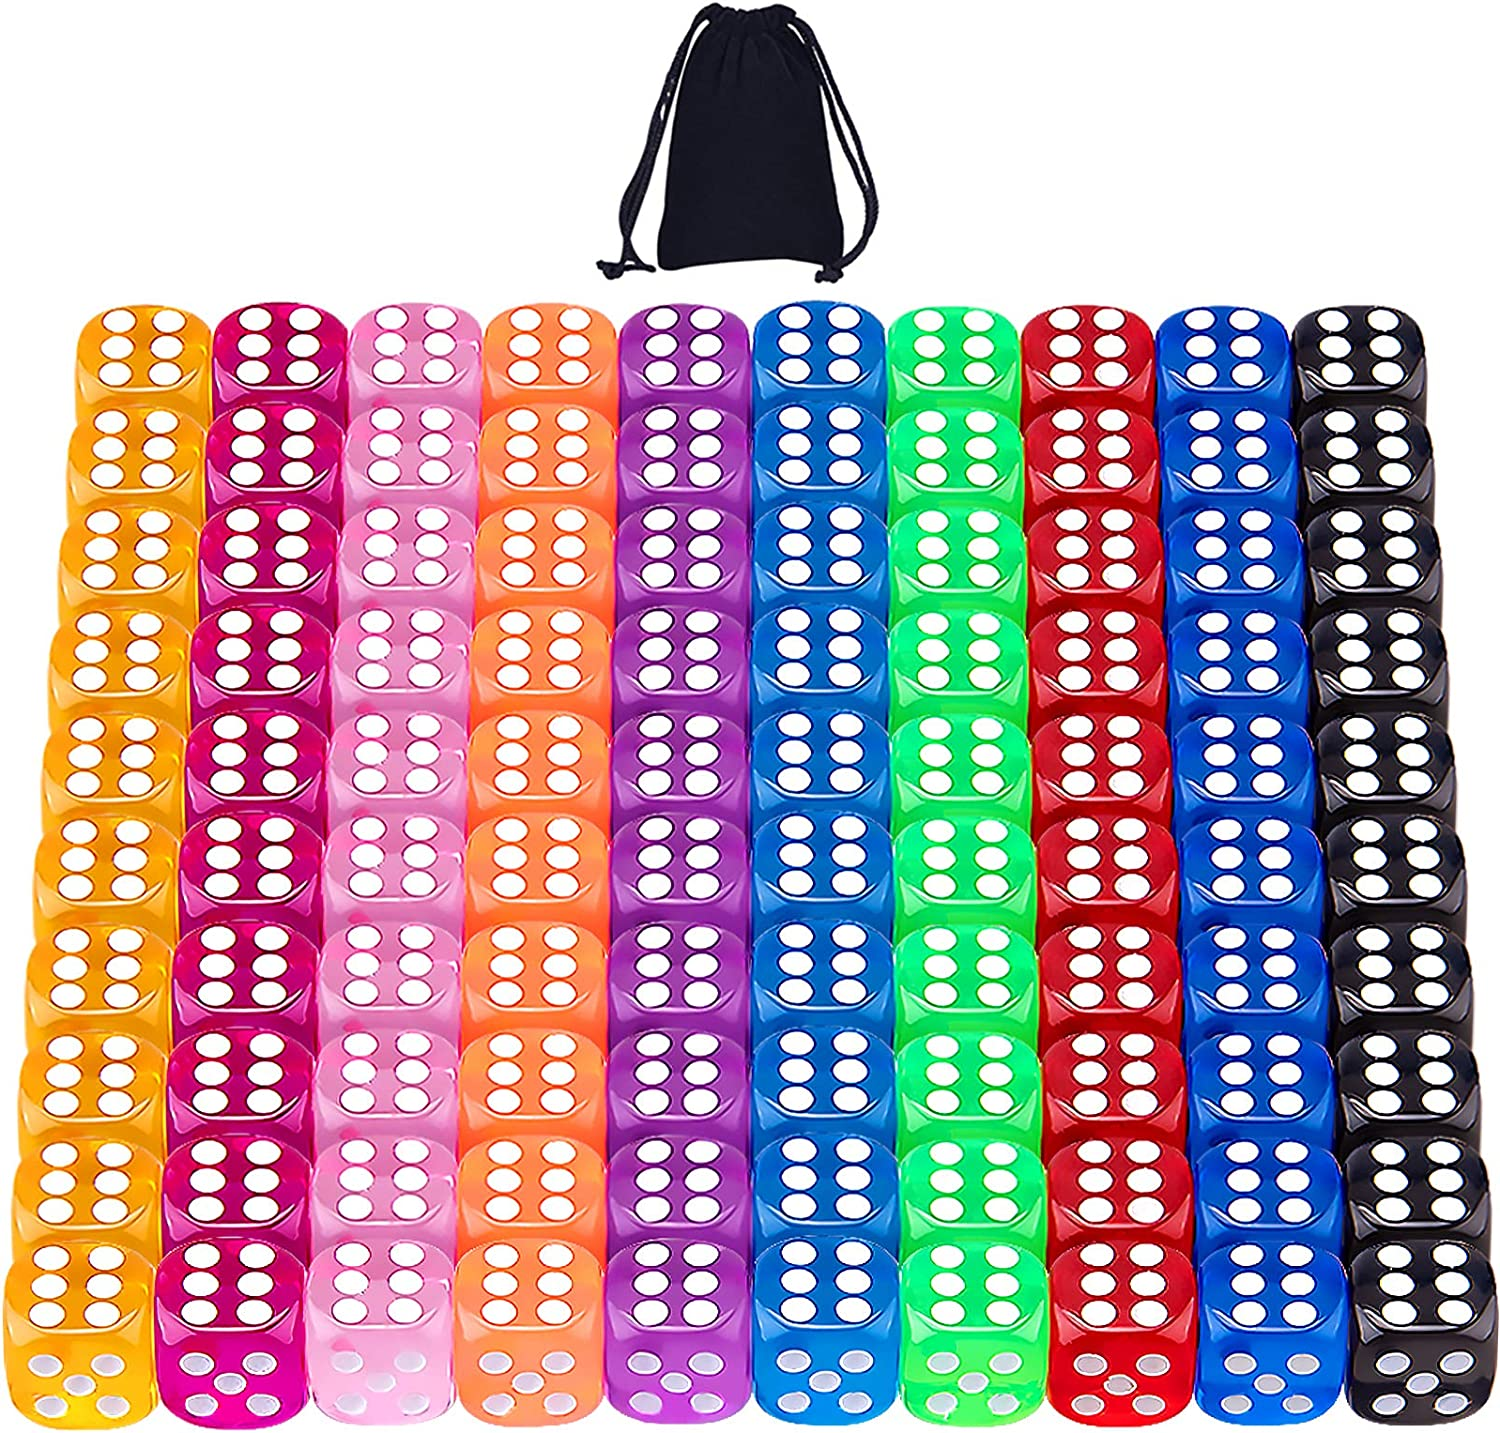 AUSTOR 100 Pieces 6 Sided Game Dice 12mm Translucent Colors Round Corner Dices Set for Tenzi, Farkle, Yahtzee, Bunco or Teaching Math with a Drawstring Storage Bag